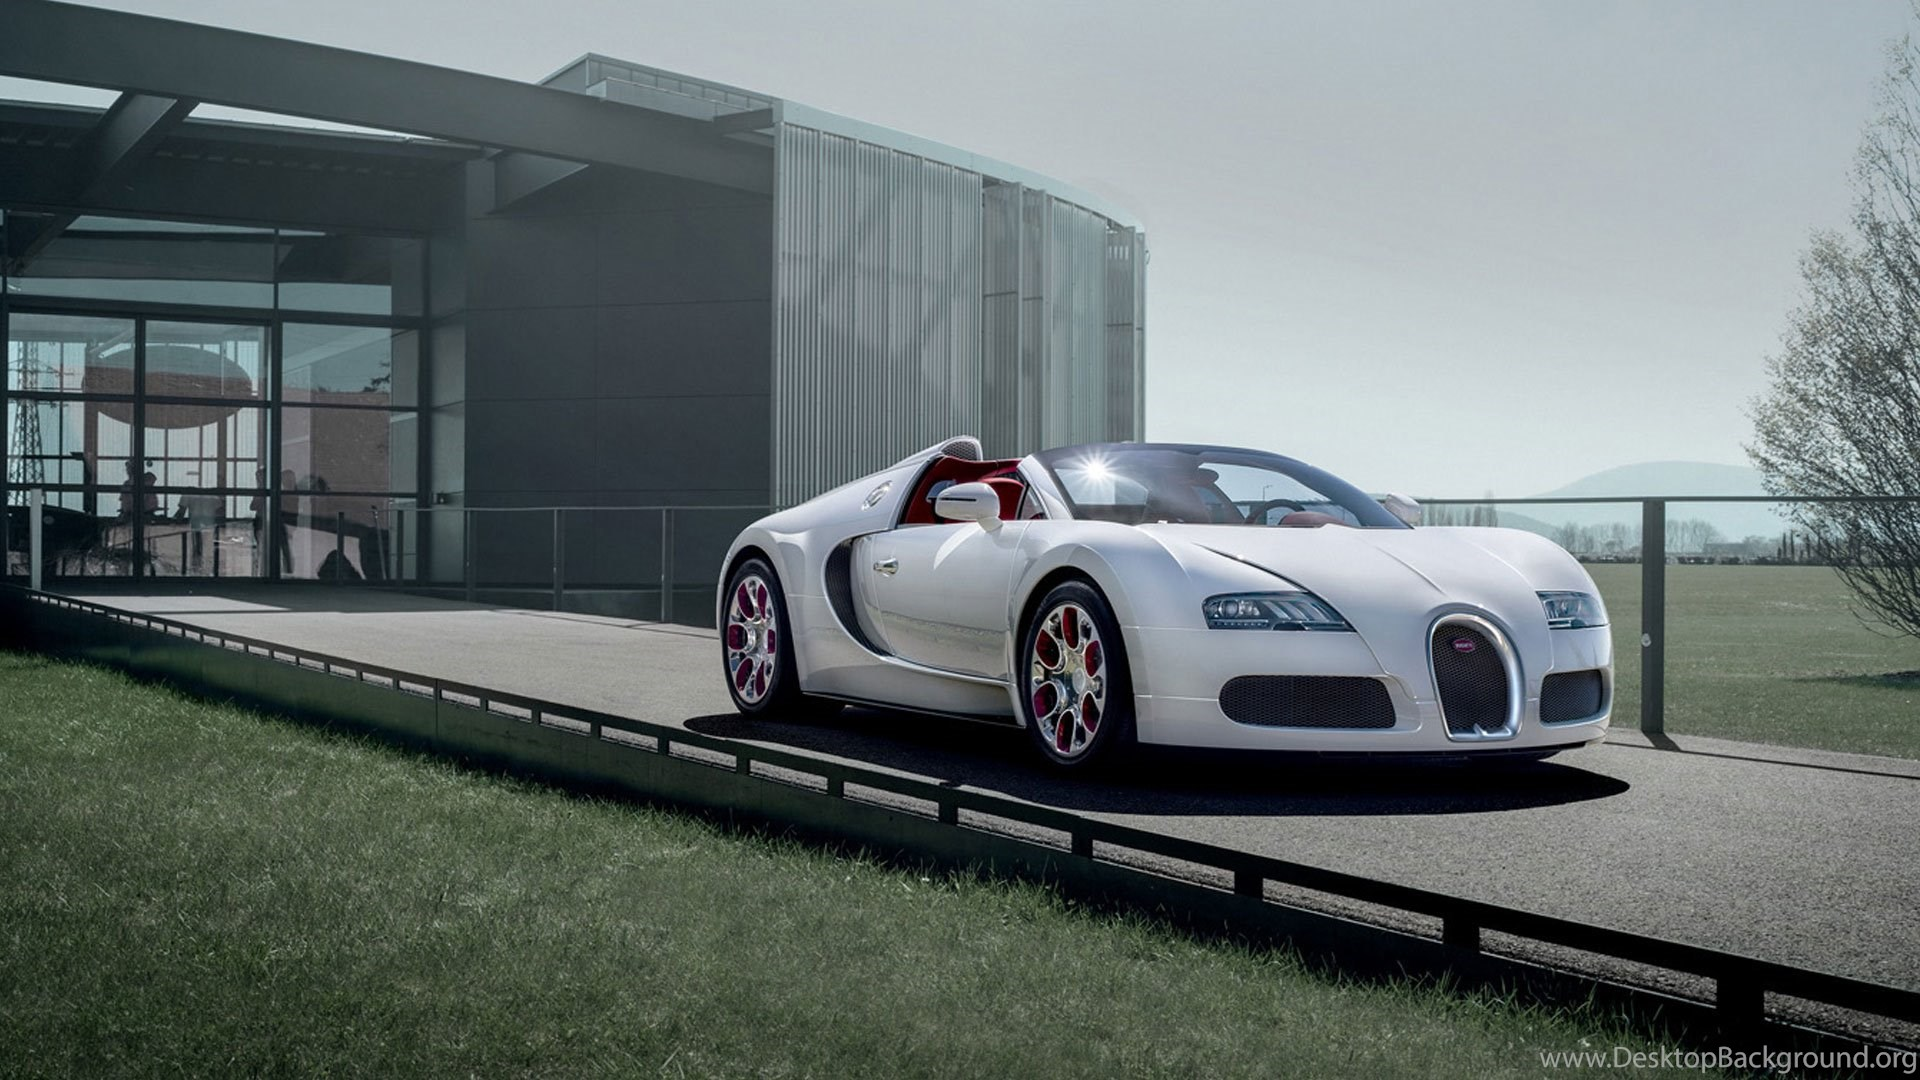 Bugatti Veyron Hd Wallpapers Desktop Background